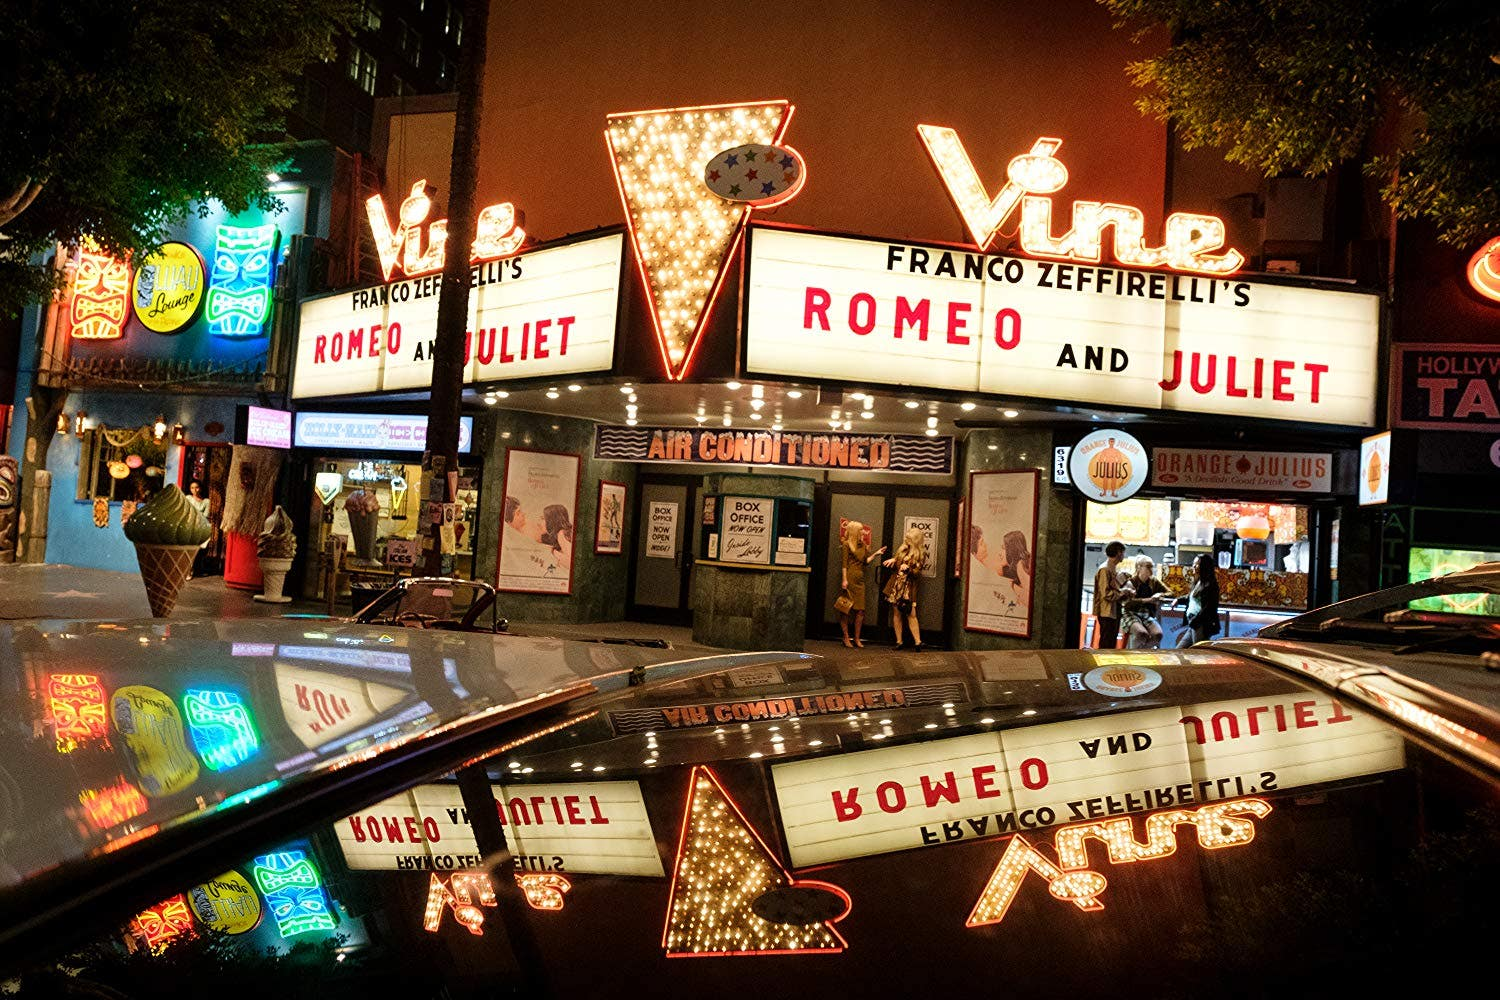 The Vine Theatre in Once Upon a Time in Hollywood